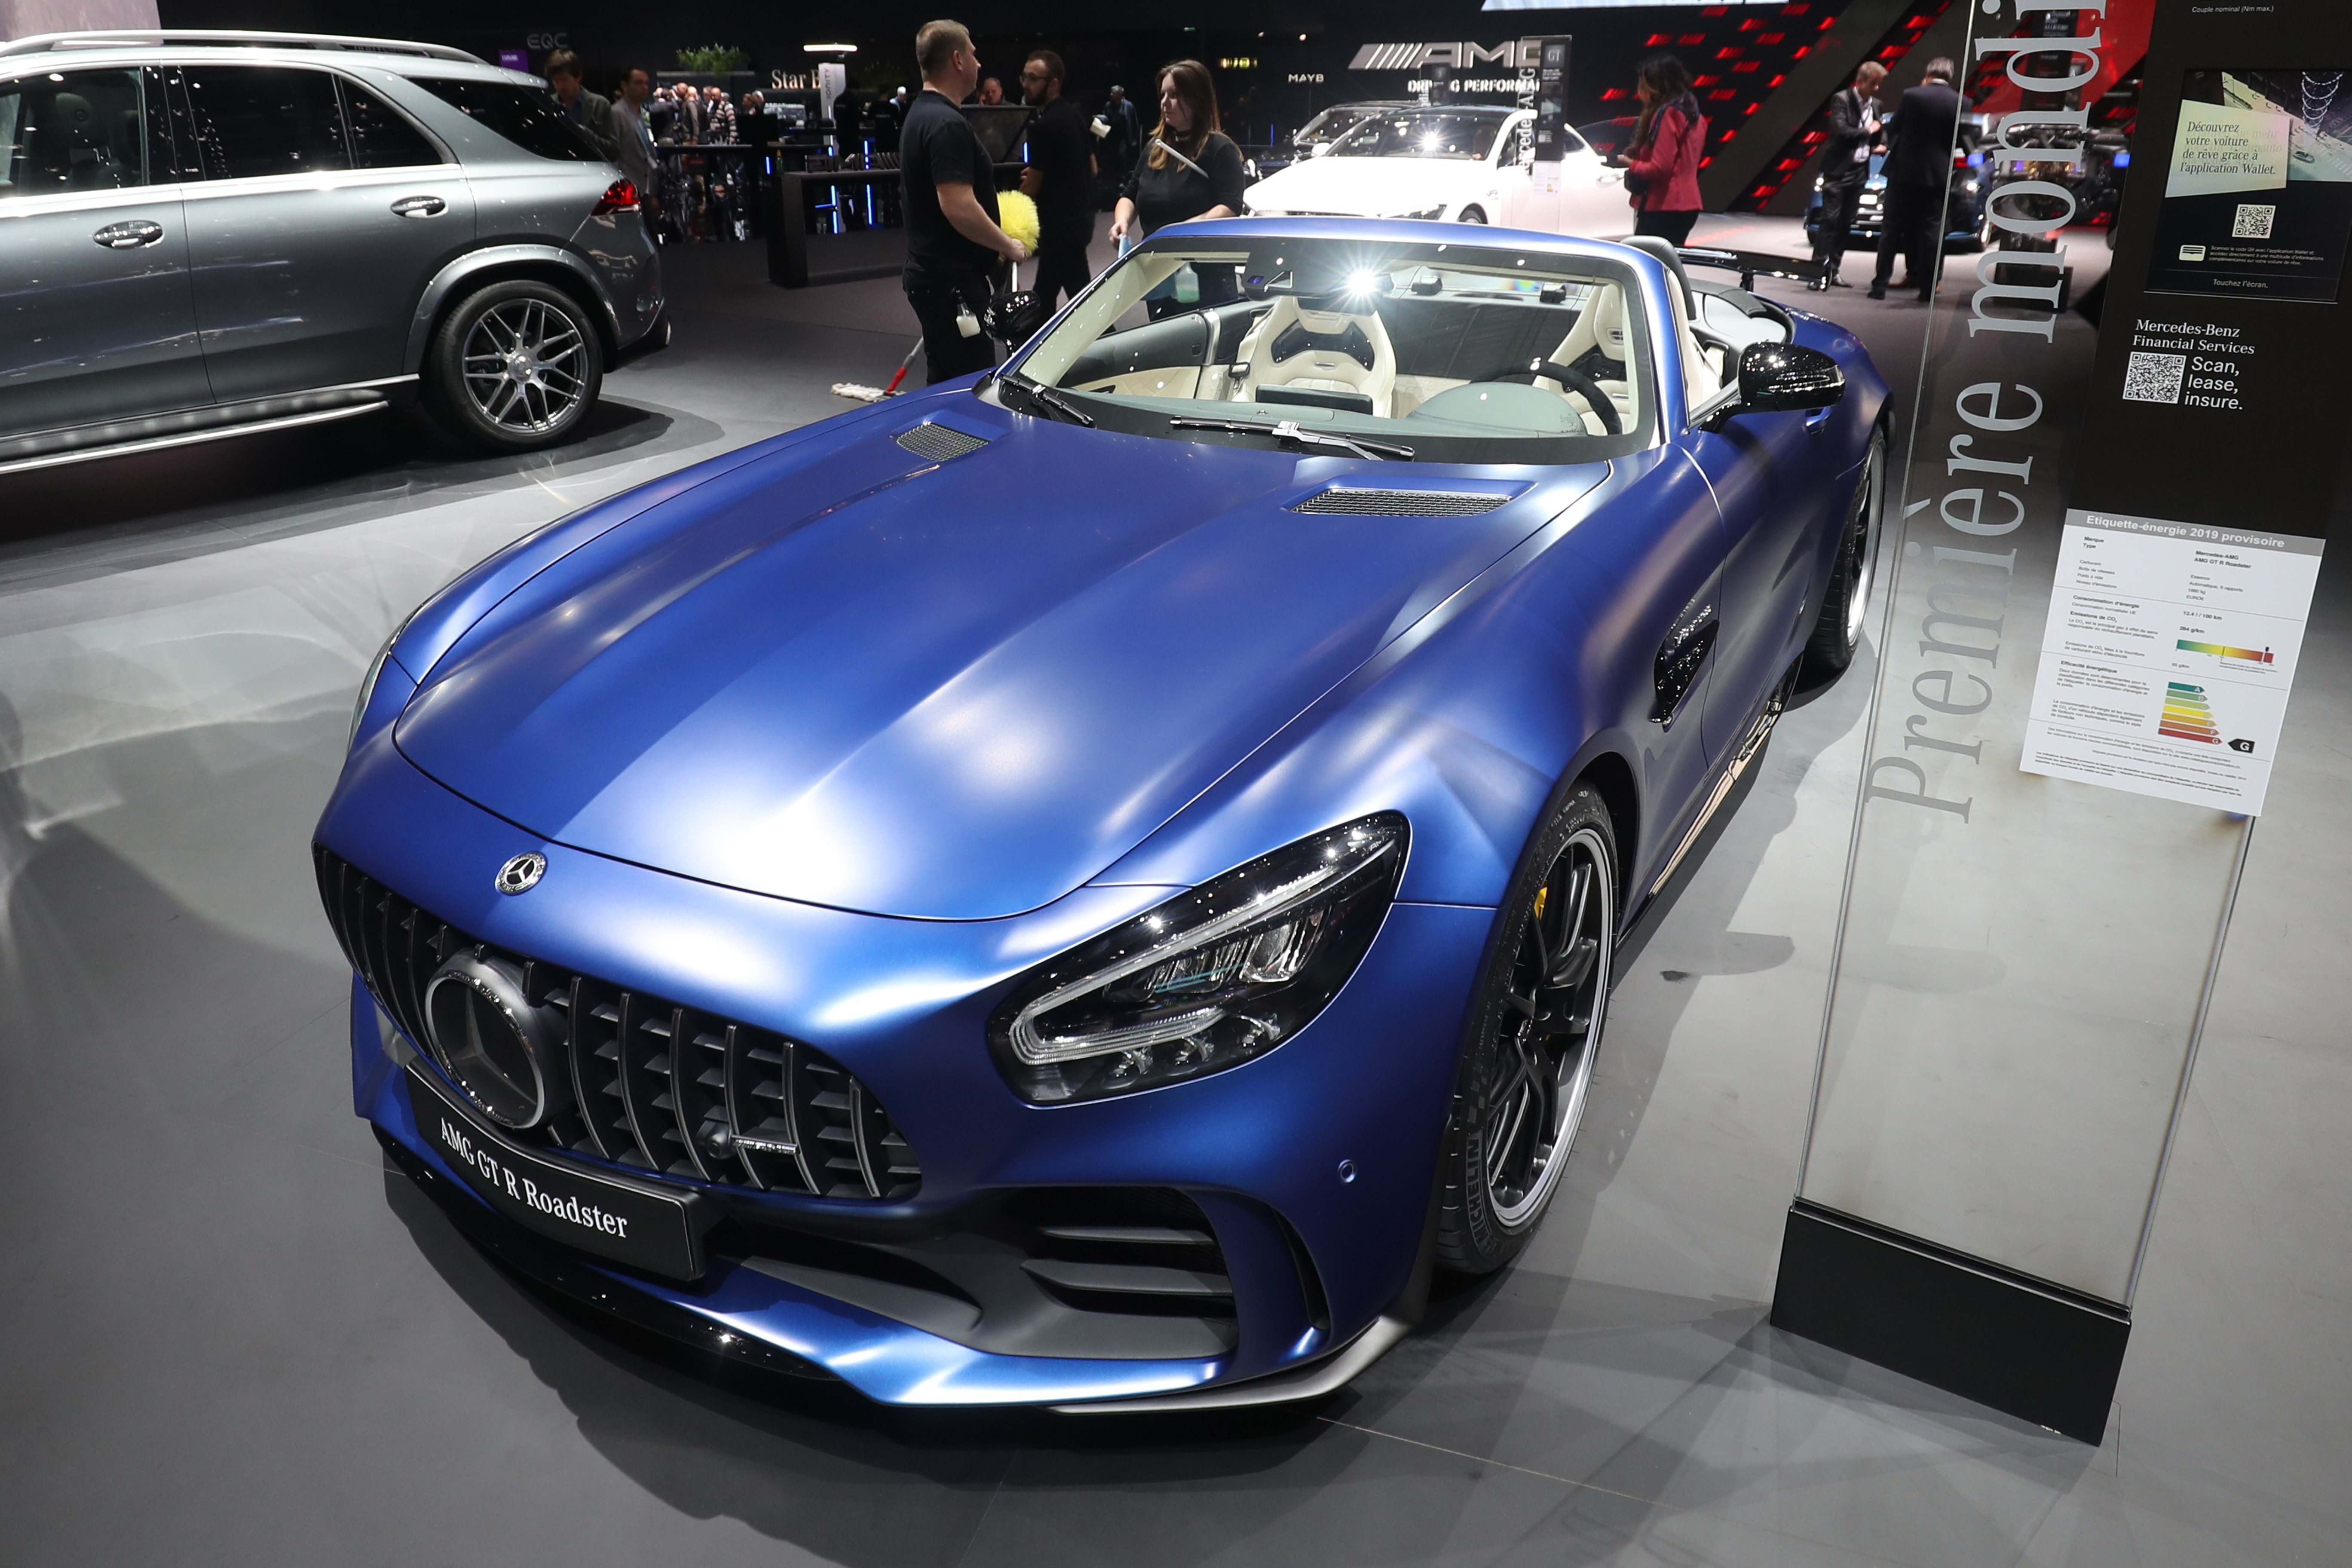 Mercedes Amg Gt R Roadster Has The Makings Of A Future Collectible